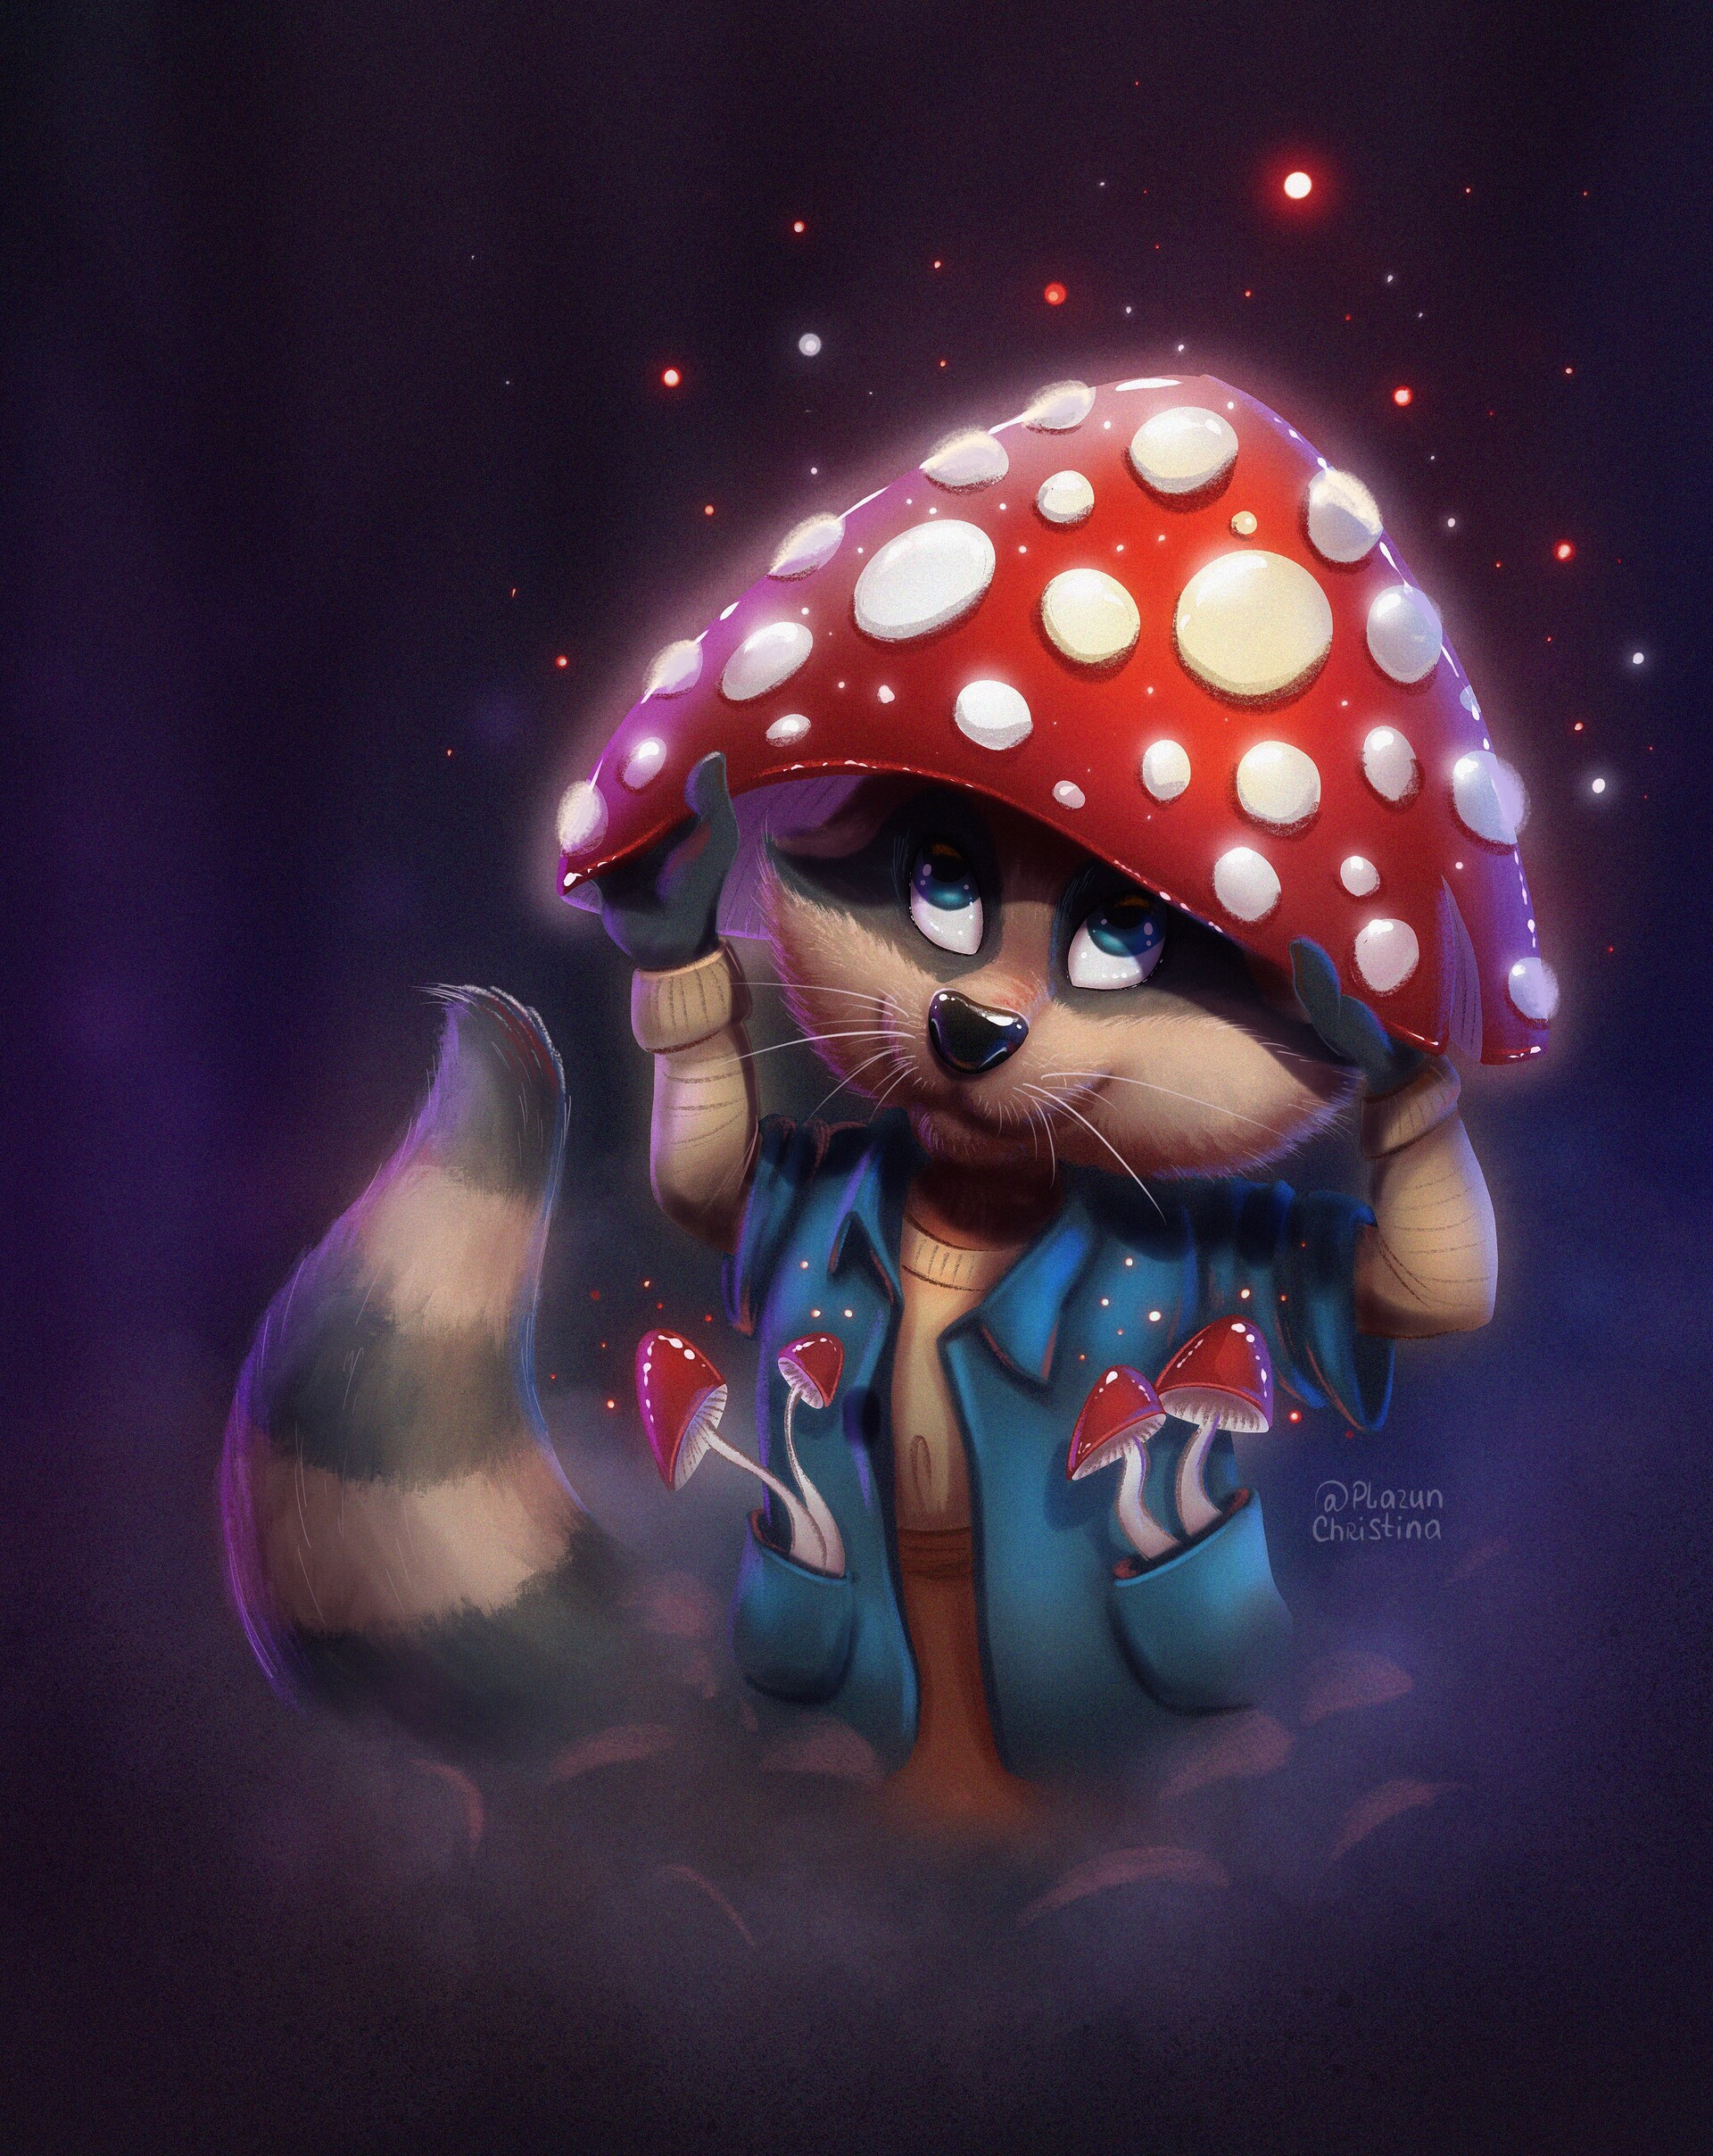 101954 download wallpaper Raccoon, Mushroom, Fly Agaric, Nice, Sweetheart, Art screensavers and pictures for free